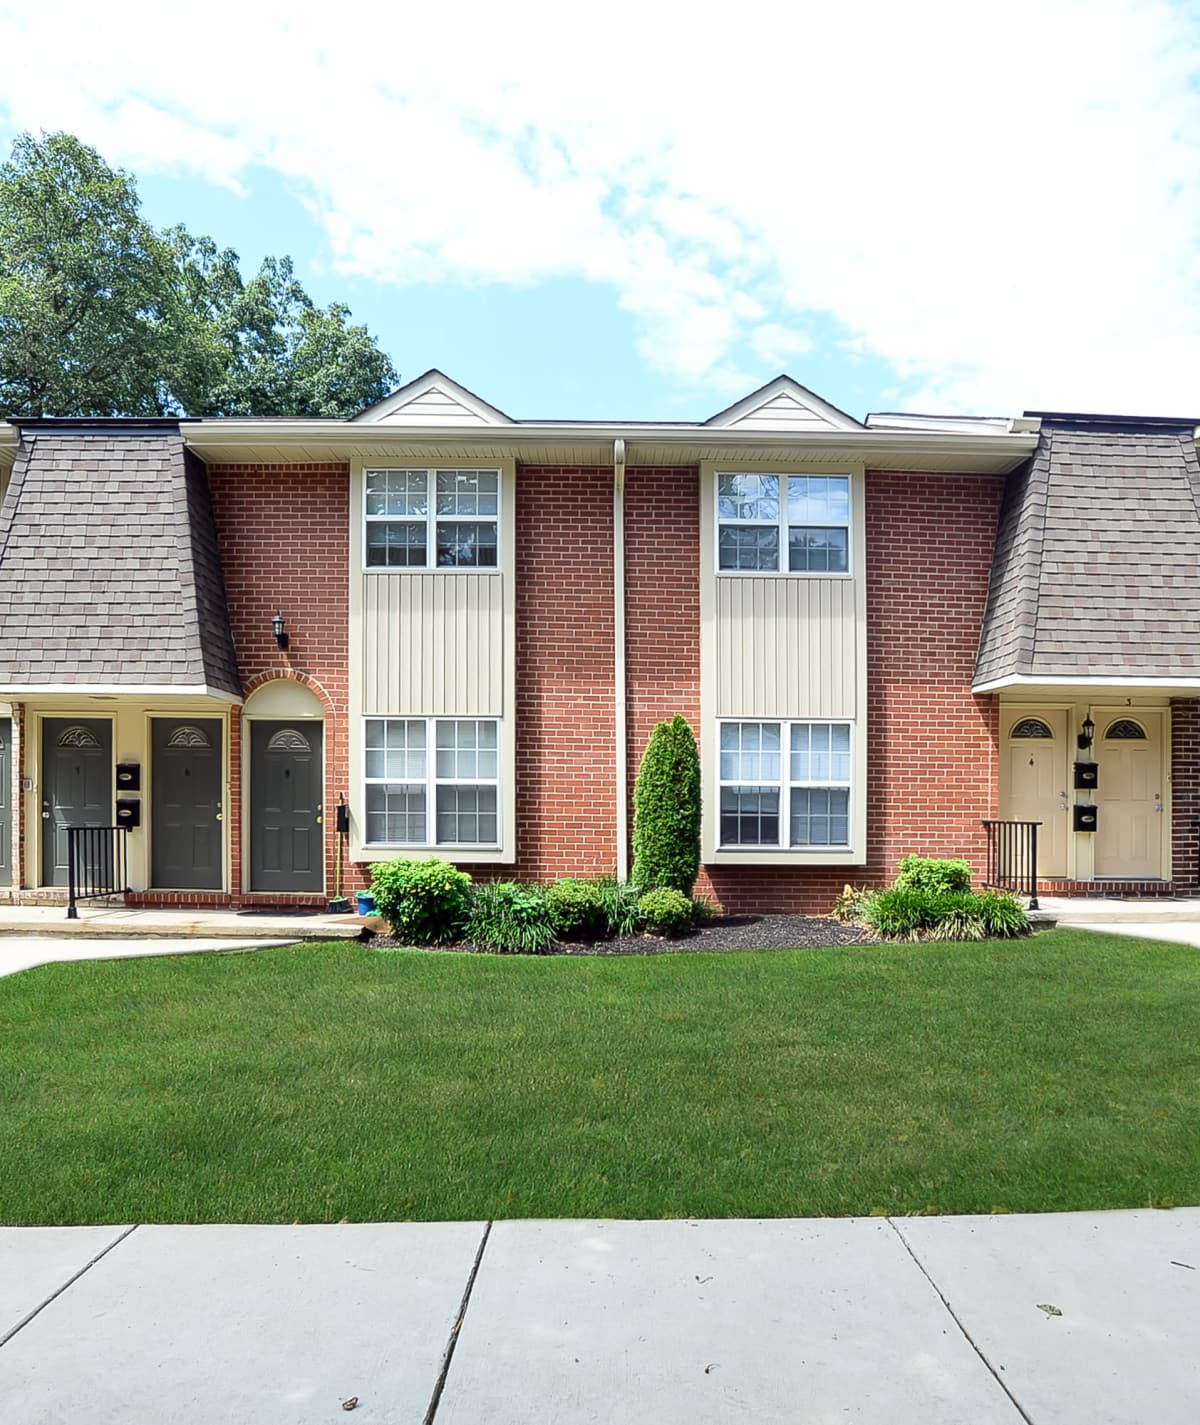 Exterior view of Moorestowne Woods Apartment Homes in Moorestown, NJ